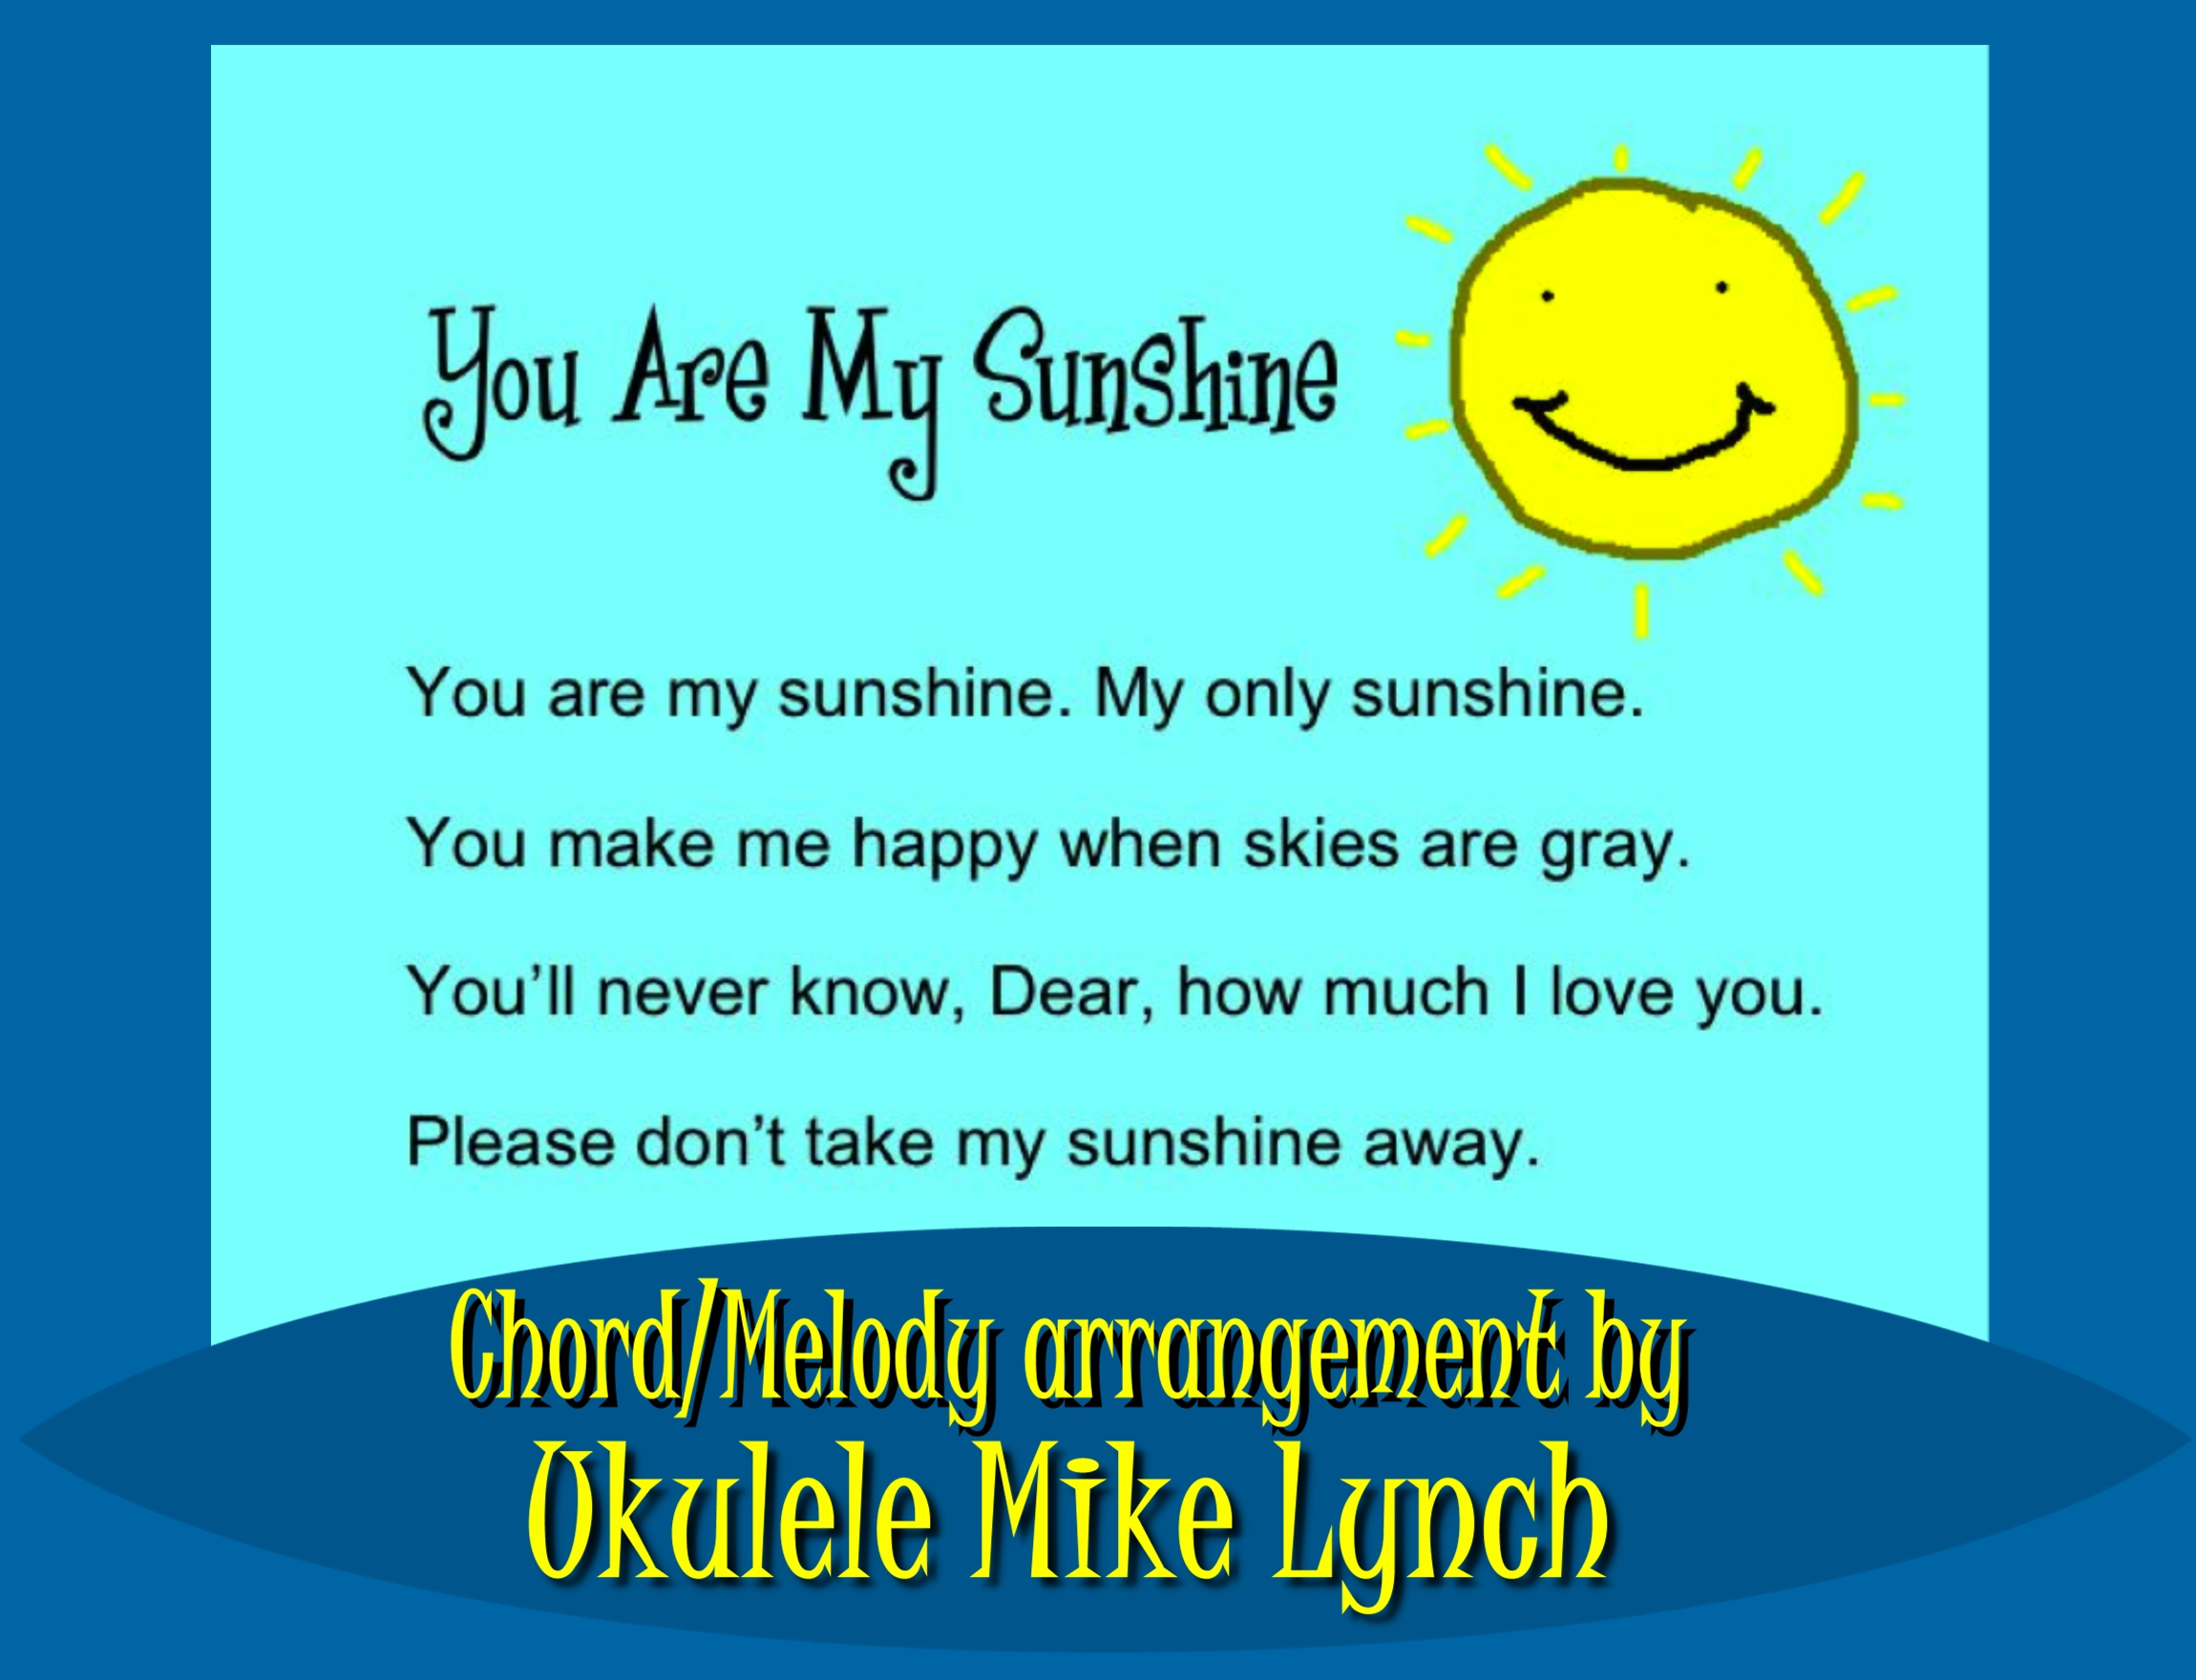 You Are My Sunshine Chords You Are My Sunshine Solo Ukulele Chordmelody Arrangement